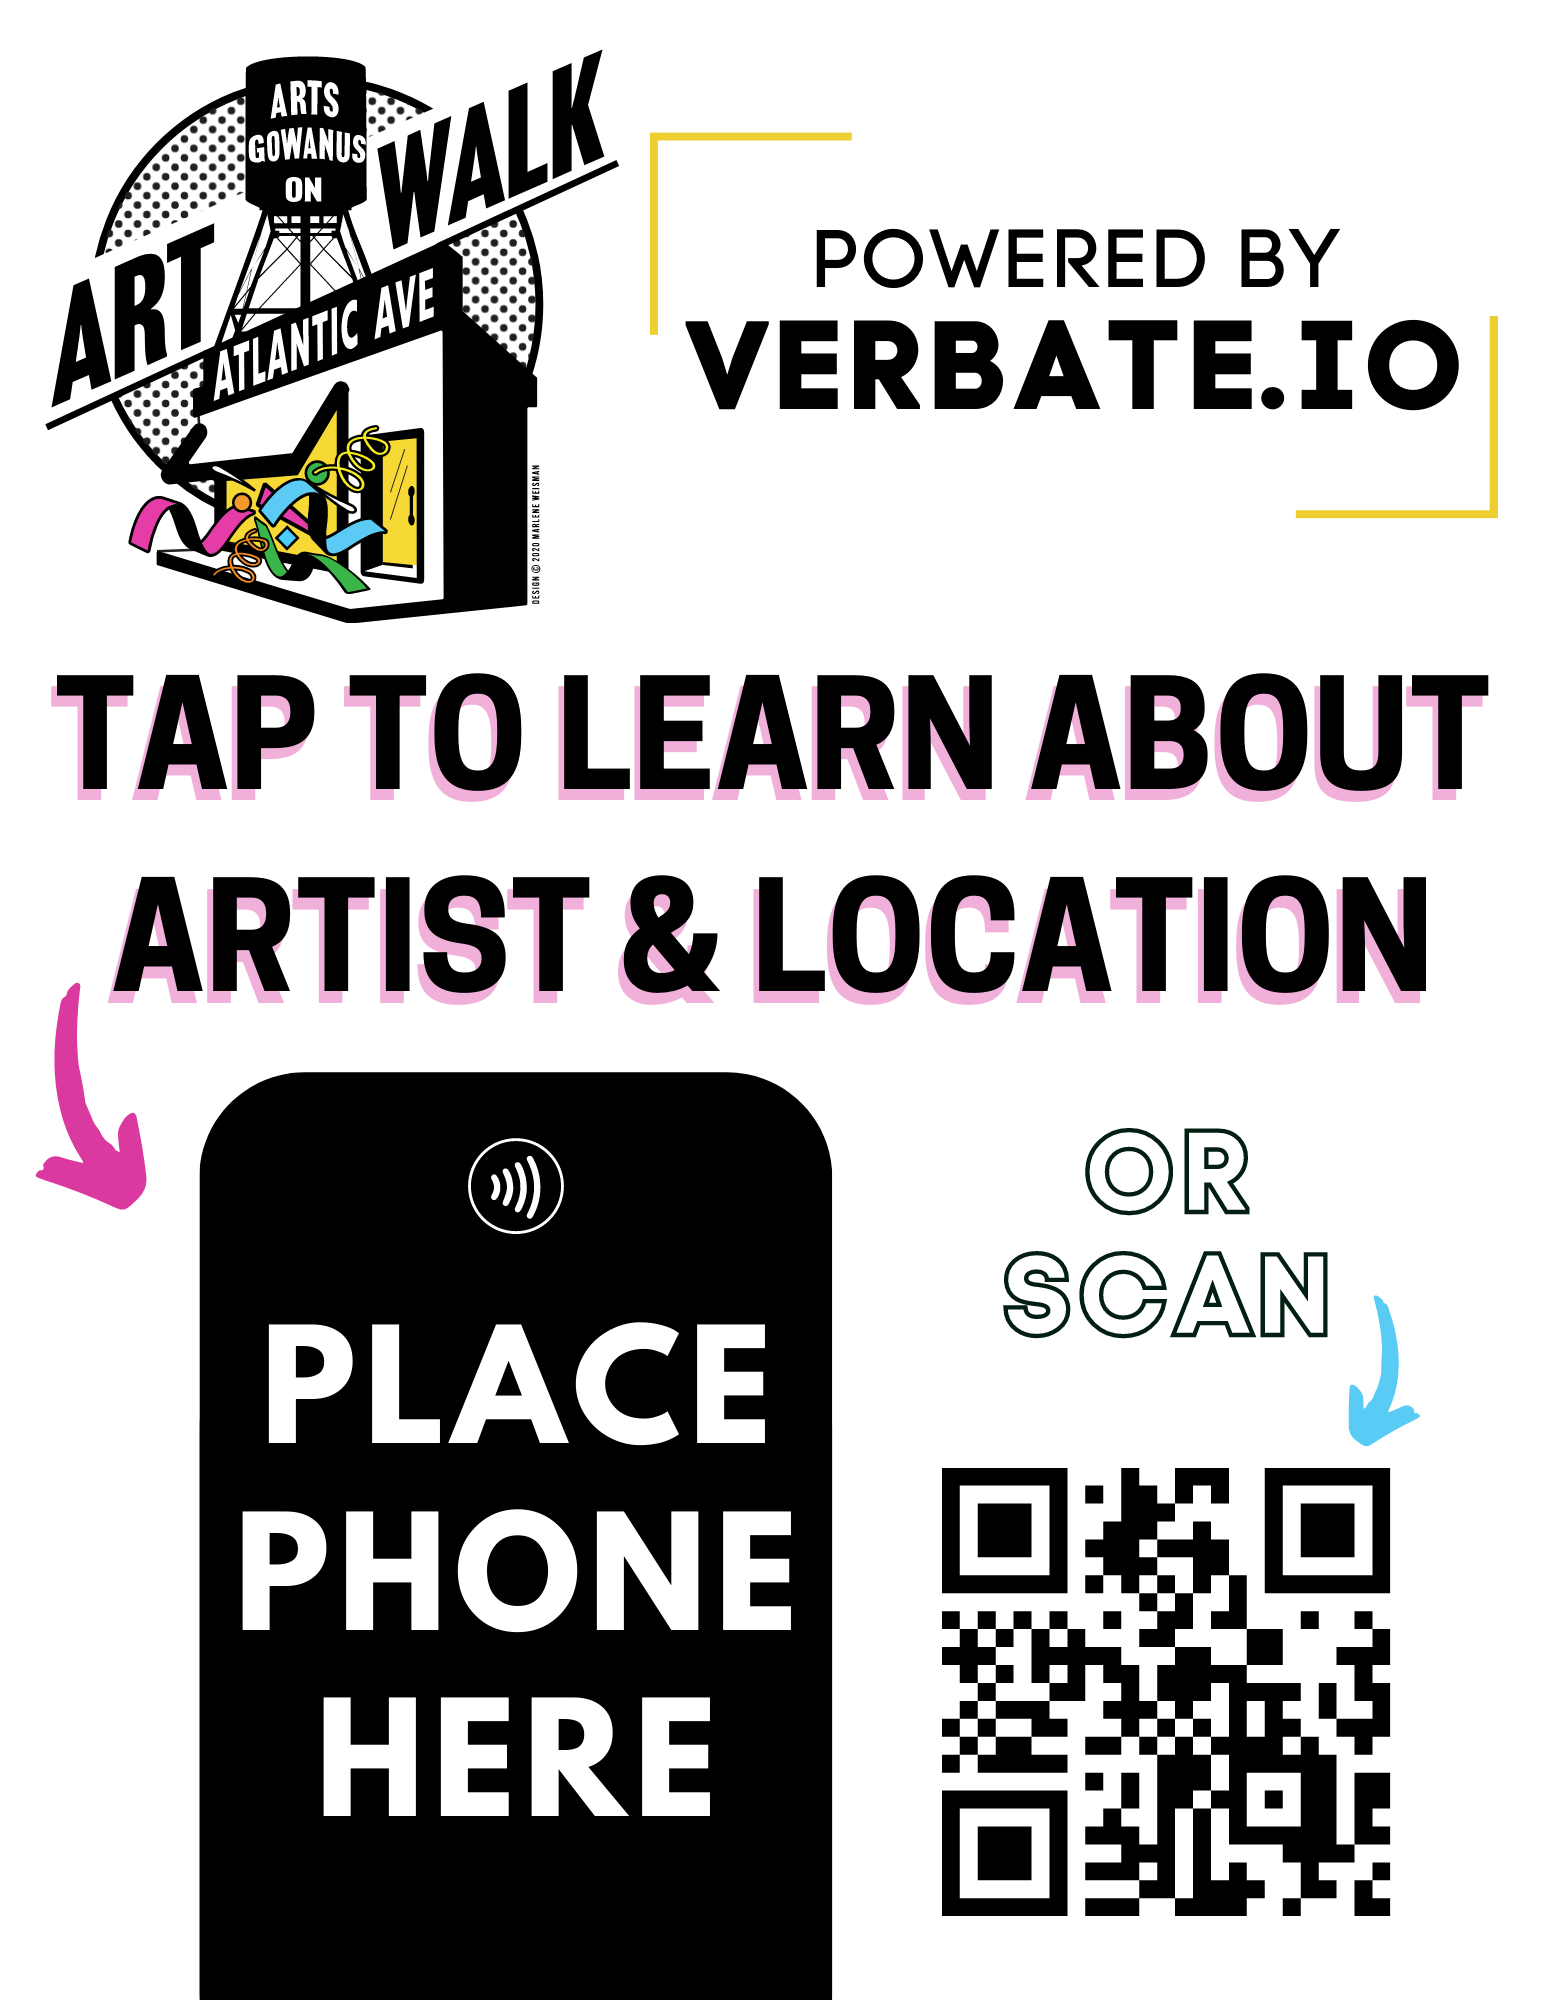 Verbate Tap or Scan Sign with QR Code